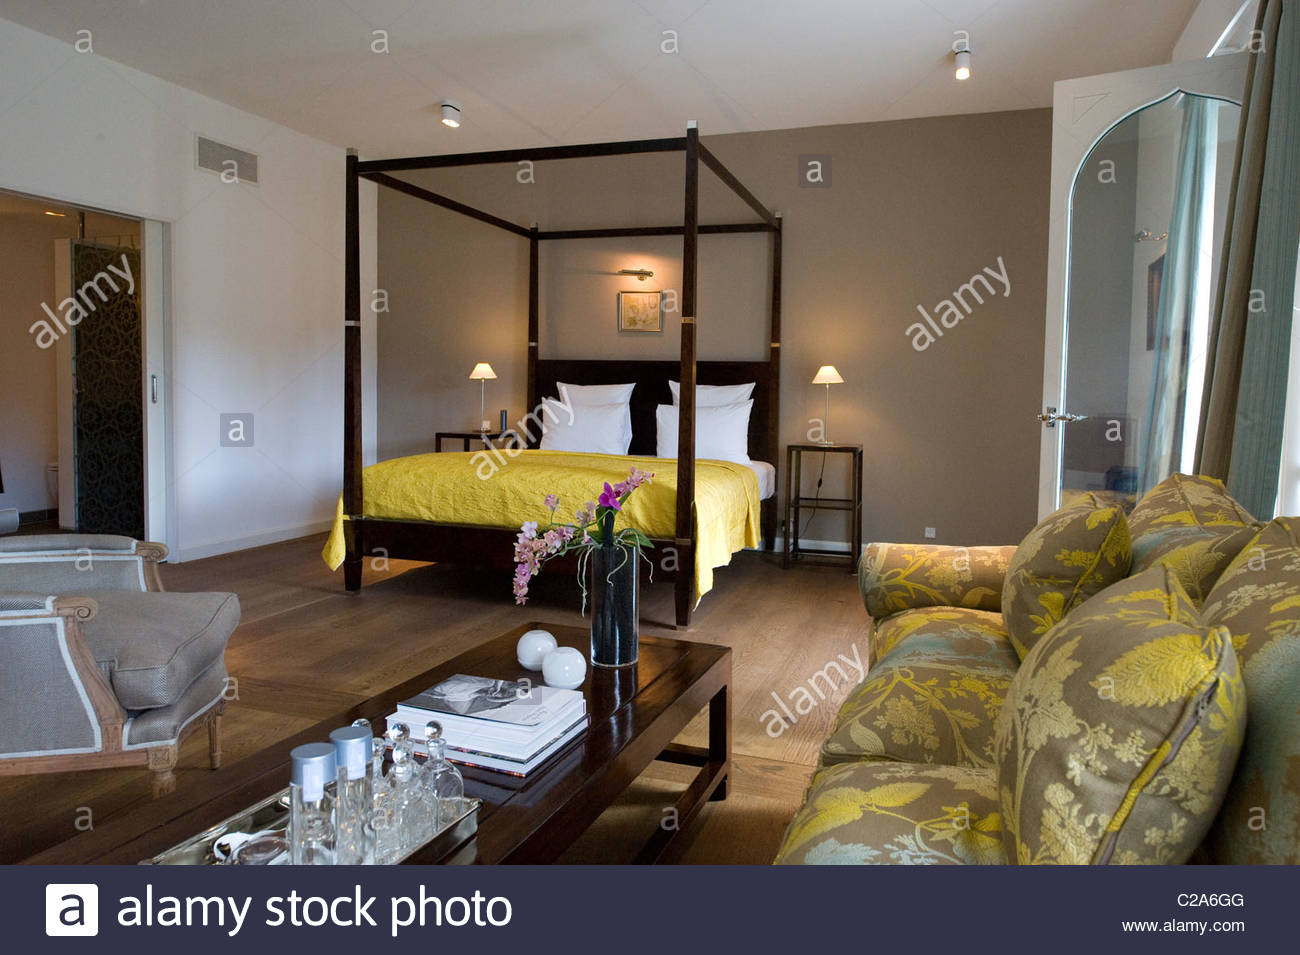 A bedroom at luxurious Hotel Nimb furnished with antiques. Stock Photo